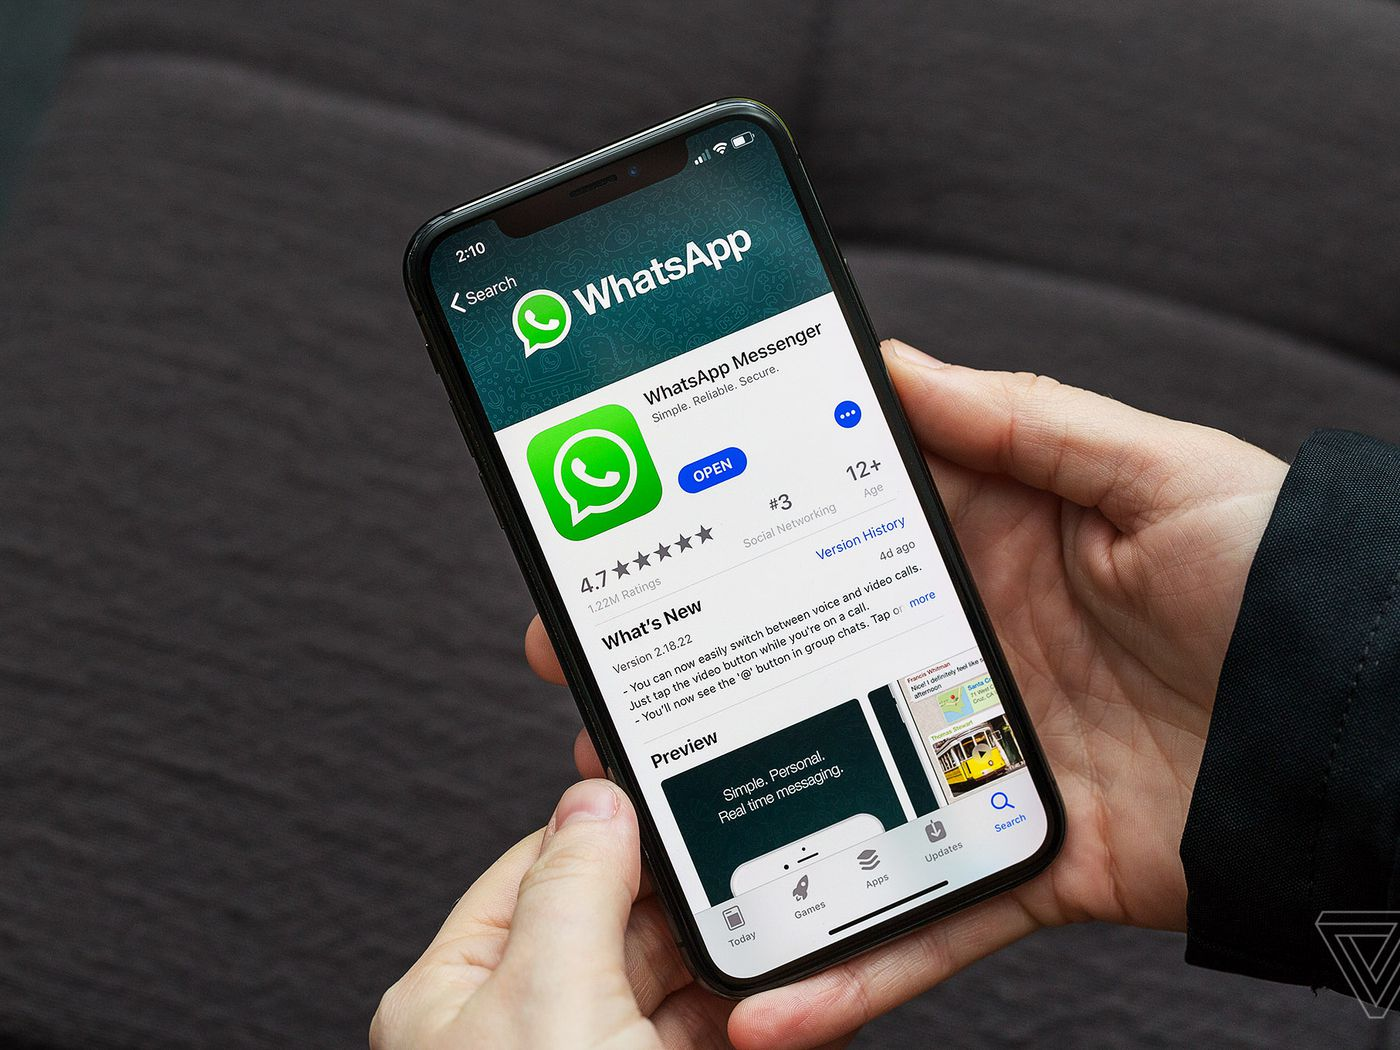 Whatsapp Messages Can Now Be Deleted An Hour After You Sent Them By 3 Way Switch History Mistake The Verge